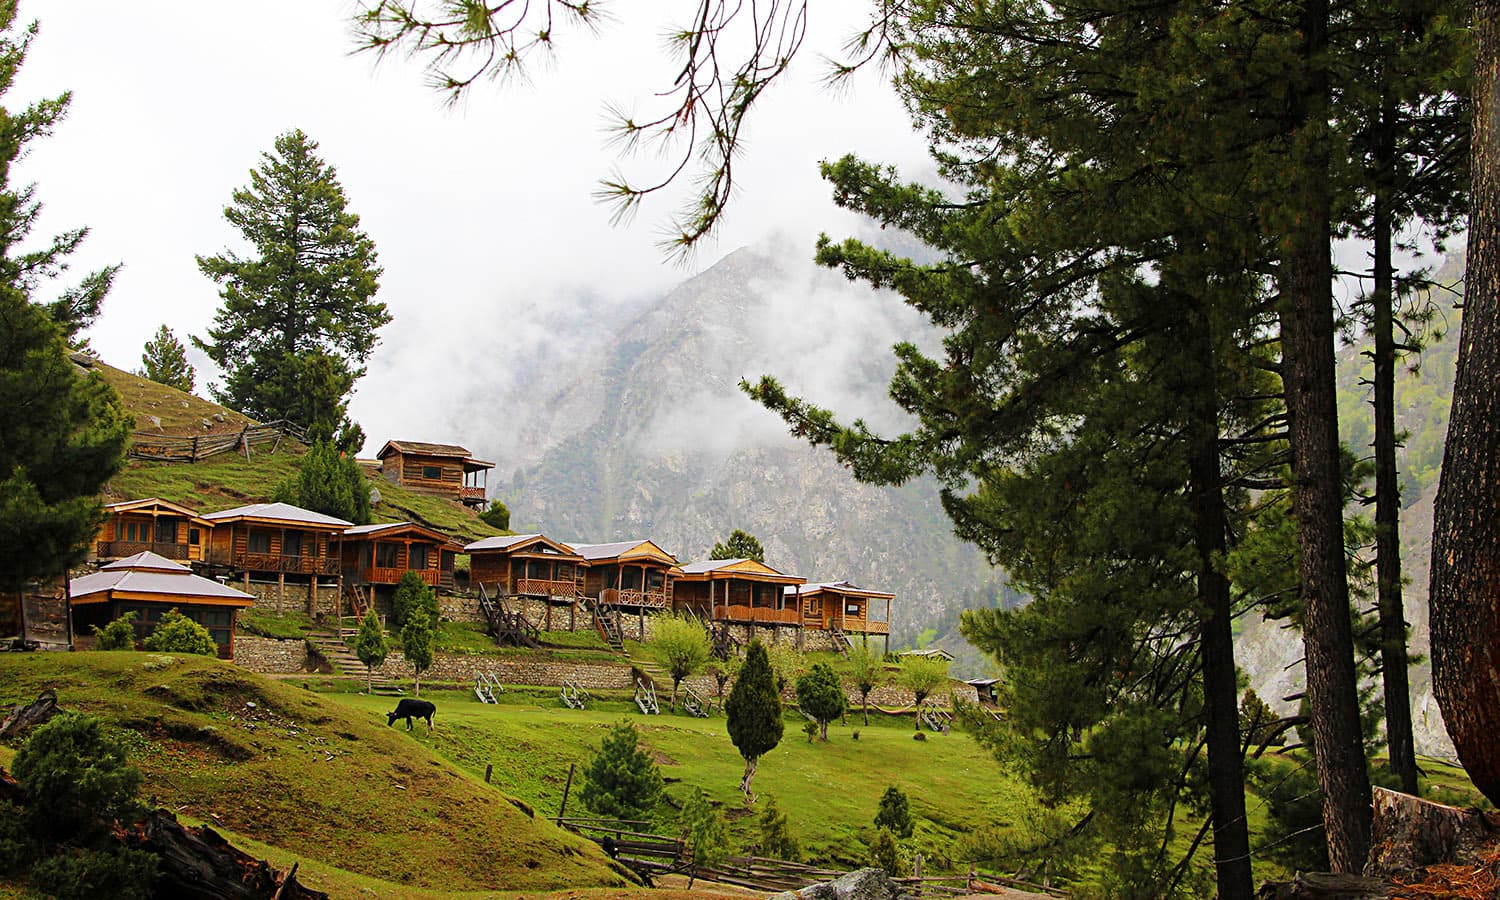 Another picturesque scene at Fairy Meadows.